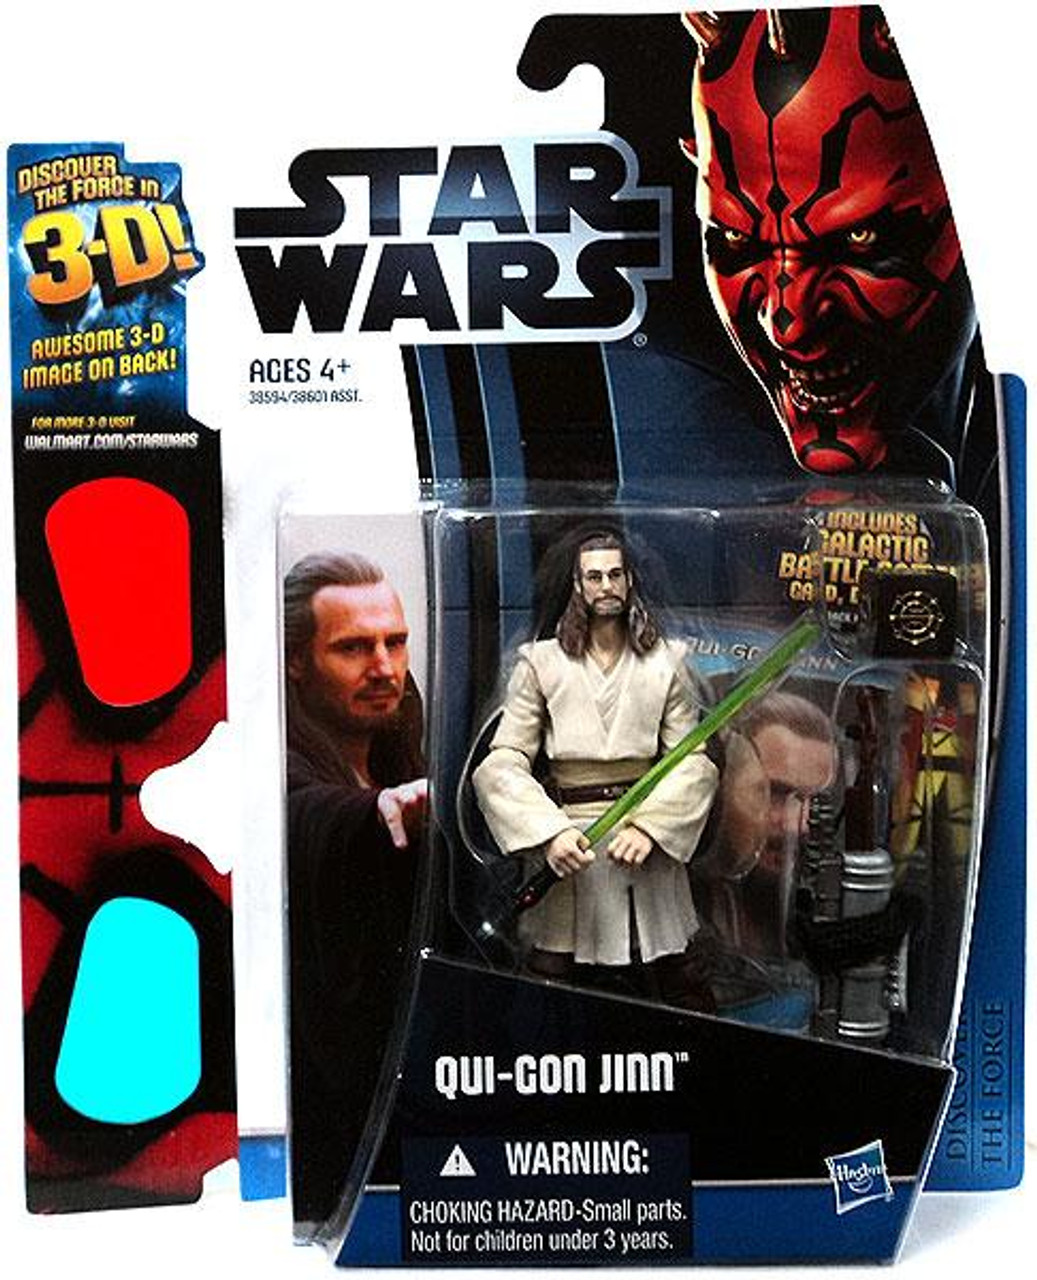 Star Wars The Phantom Menace Discover the Force 2012 Qui-Gon Jinn Exclusive Action Figure